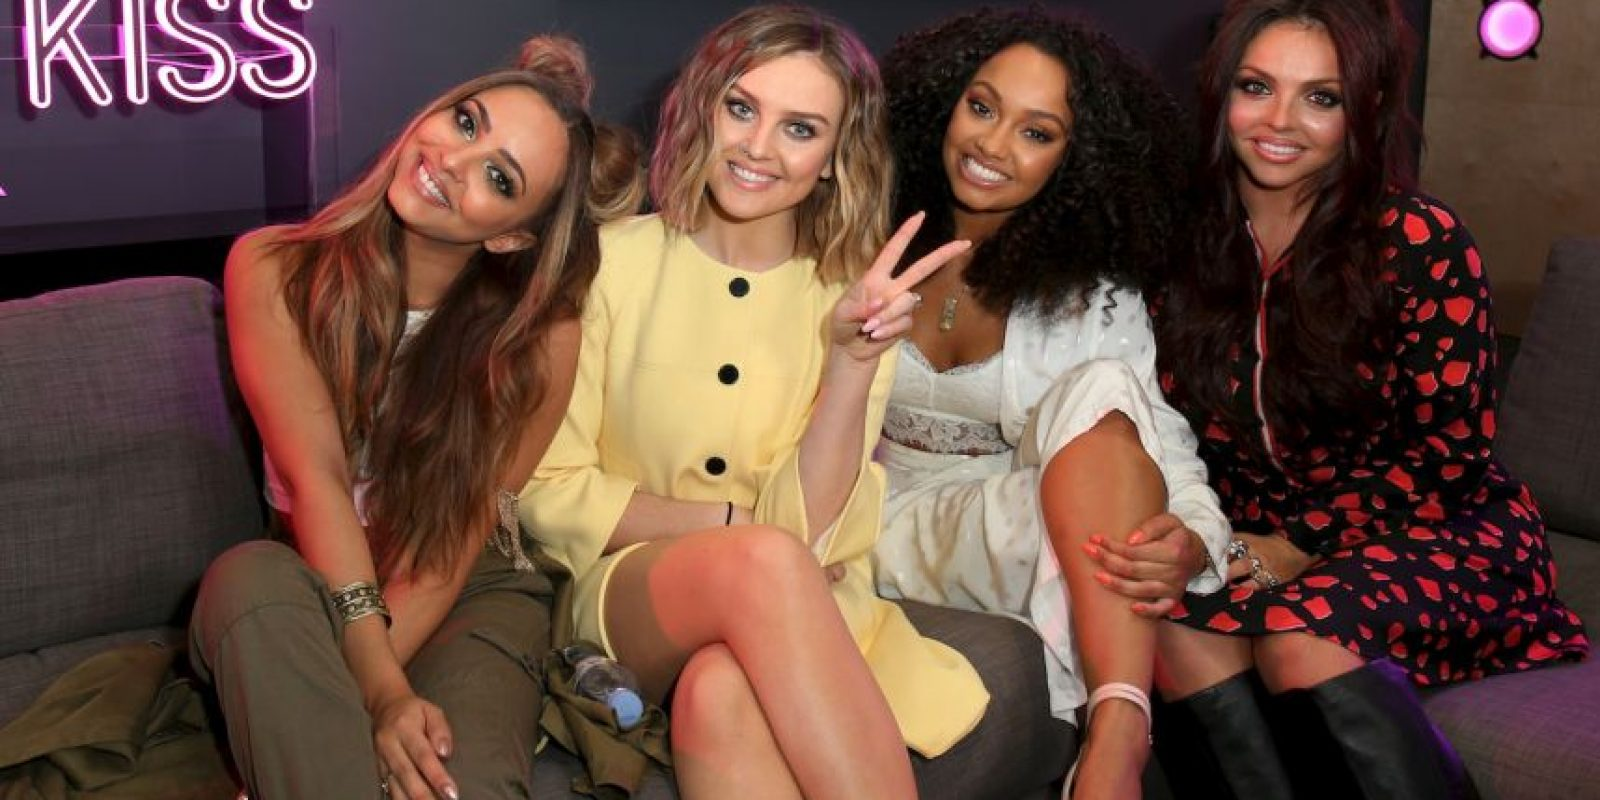 Little Mix está formado por: Leigh-Anne Pinnock, Jesy Nelson, Jade Thirlwall y Perrie Edwards. Foto: Getty Images